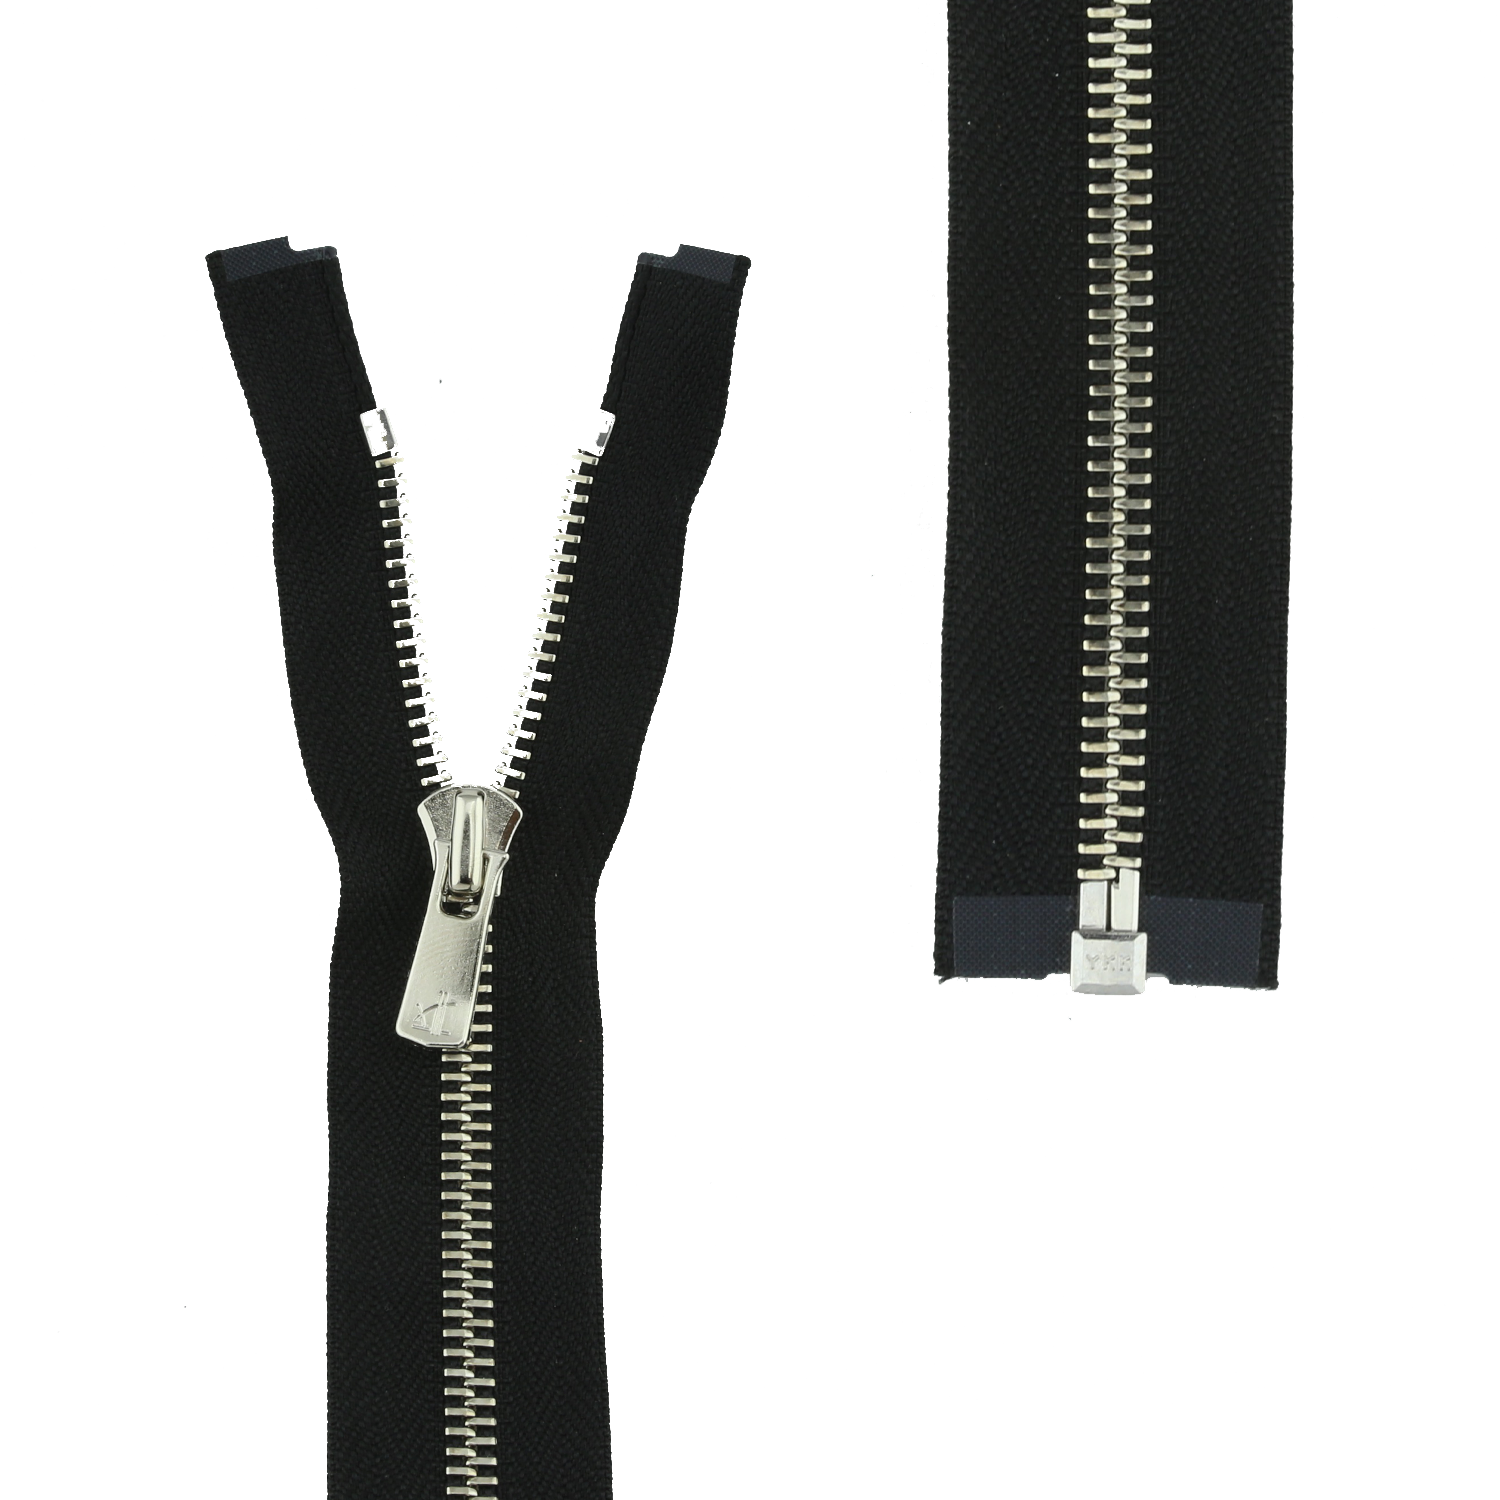 opened the zipper down black and metal